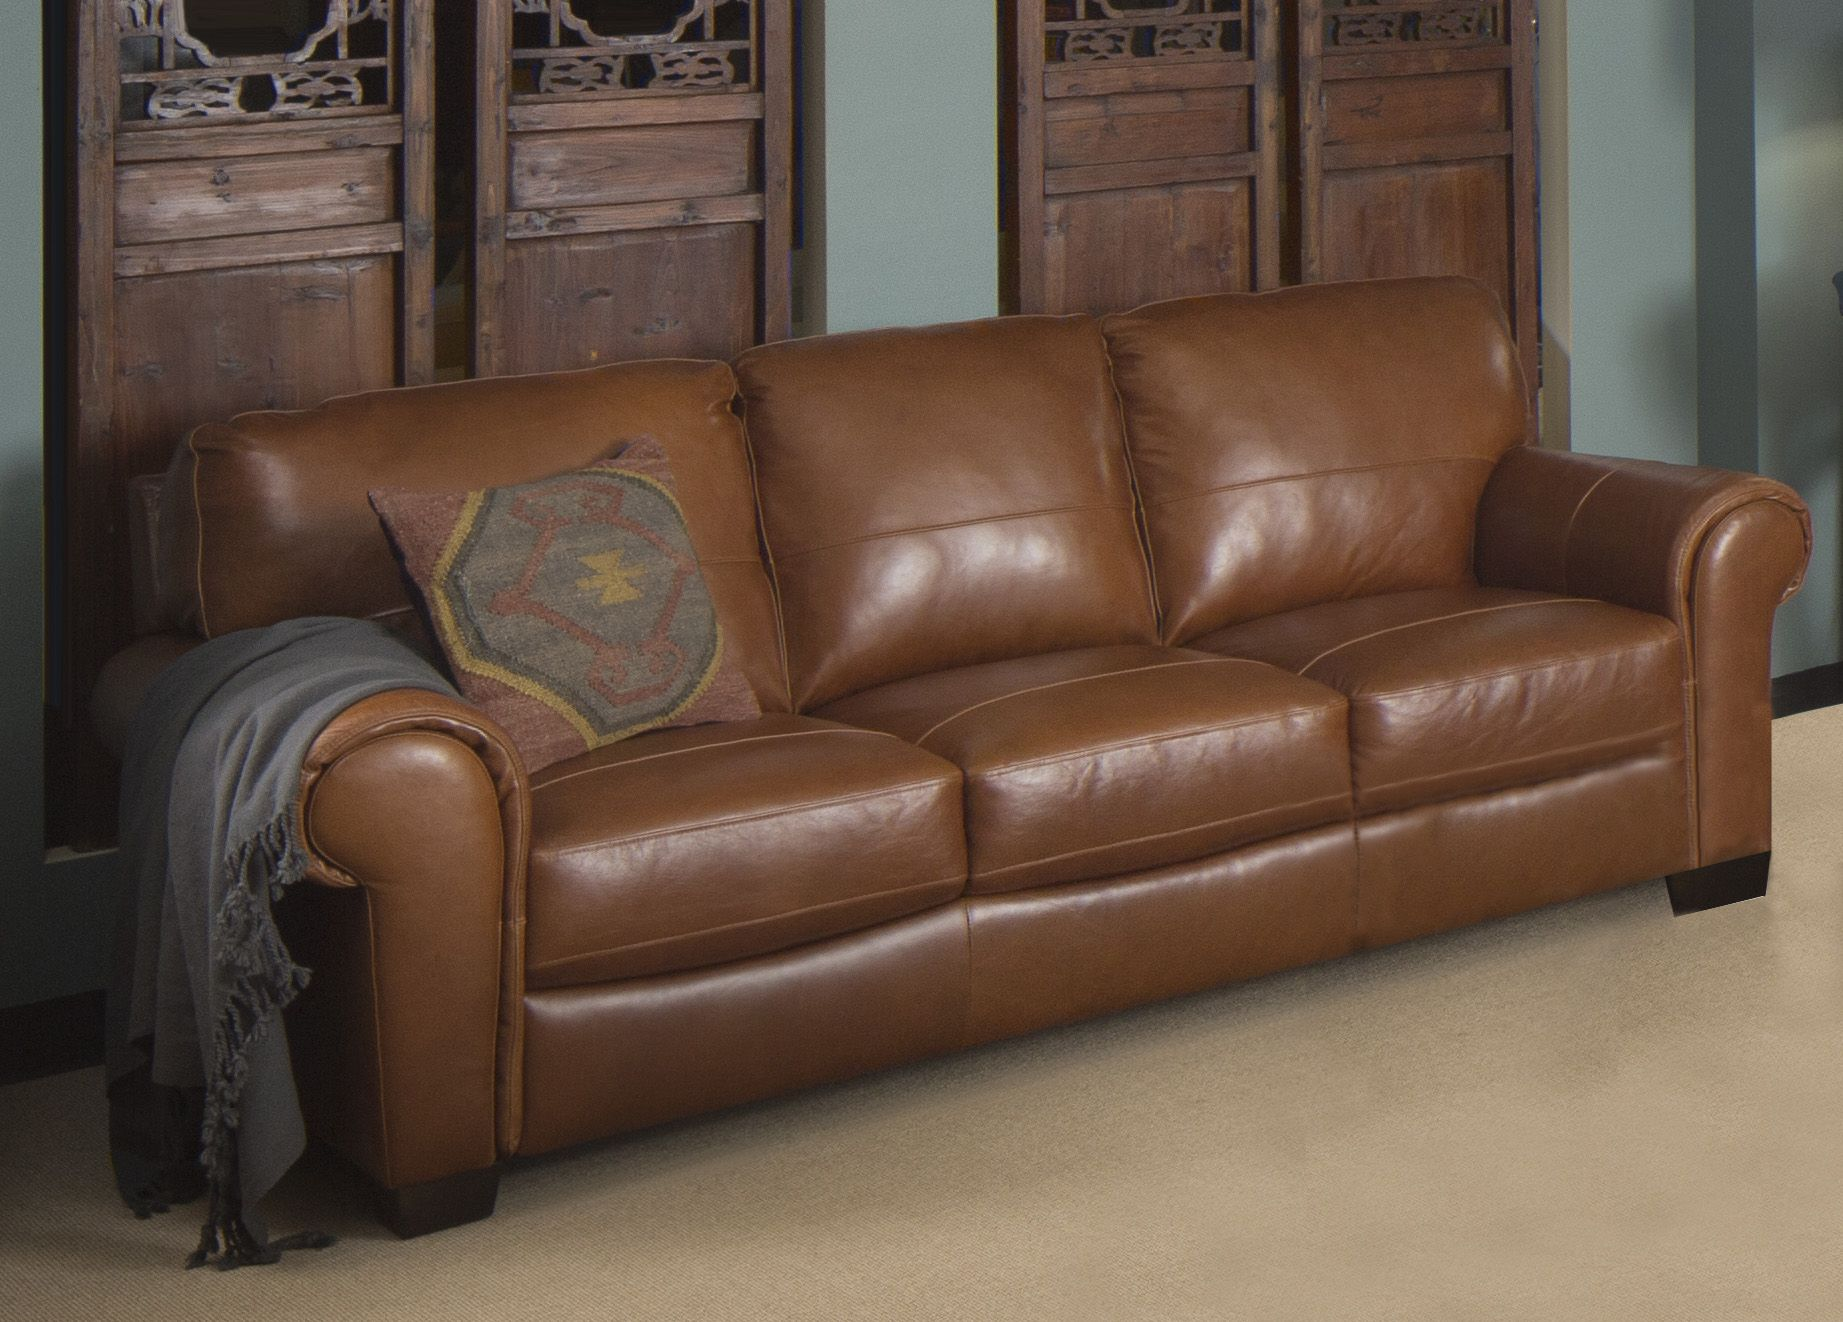 Leather Lounge Bristol 3 Seater Leather Lounge In Whisky Colour Dining Living